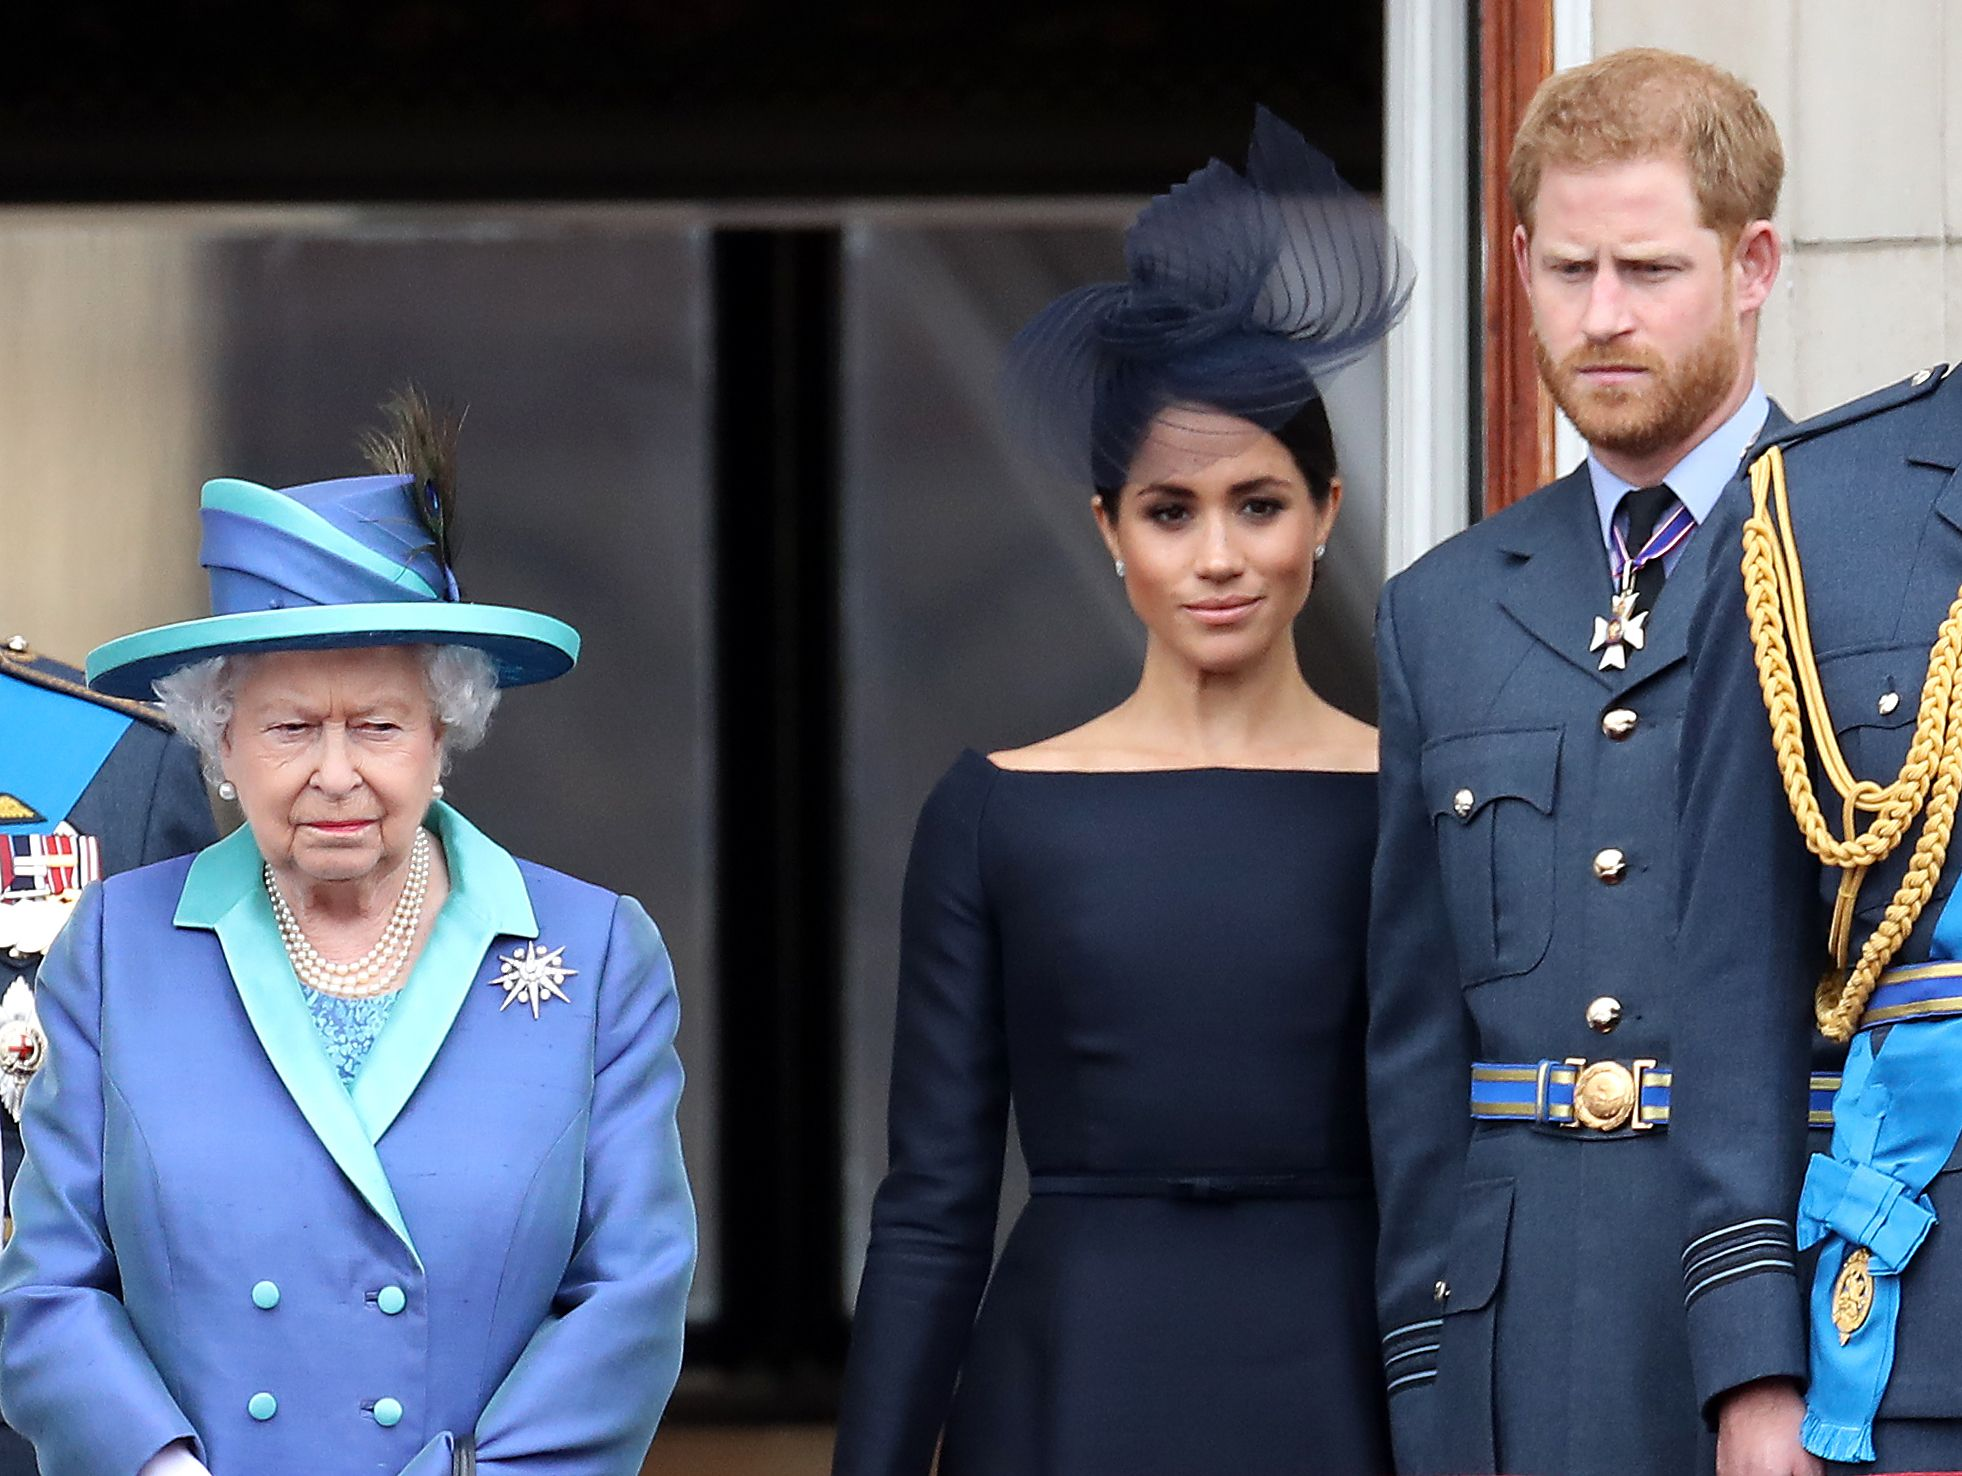 Buckingham Palace Reacts To Prince Harry and Meghan Markle's Interview